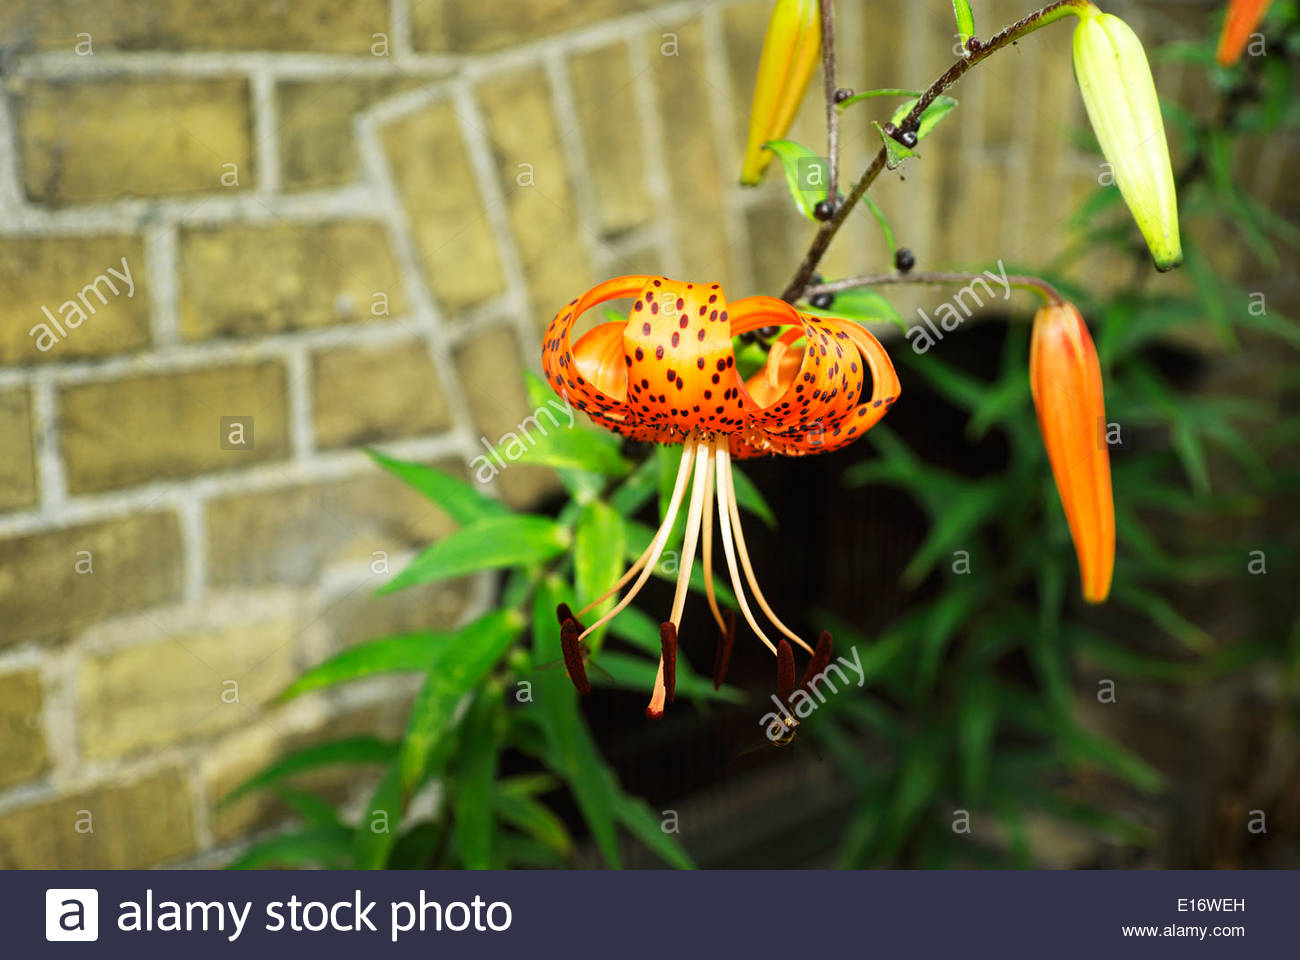 A bee works on an anther of a tiger lily flower growing beside a brick wall in Arnis, Germany, the country's smallest city. - Stock Image